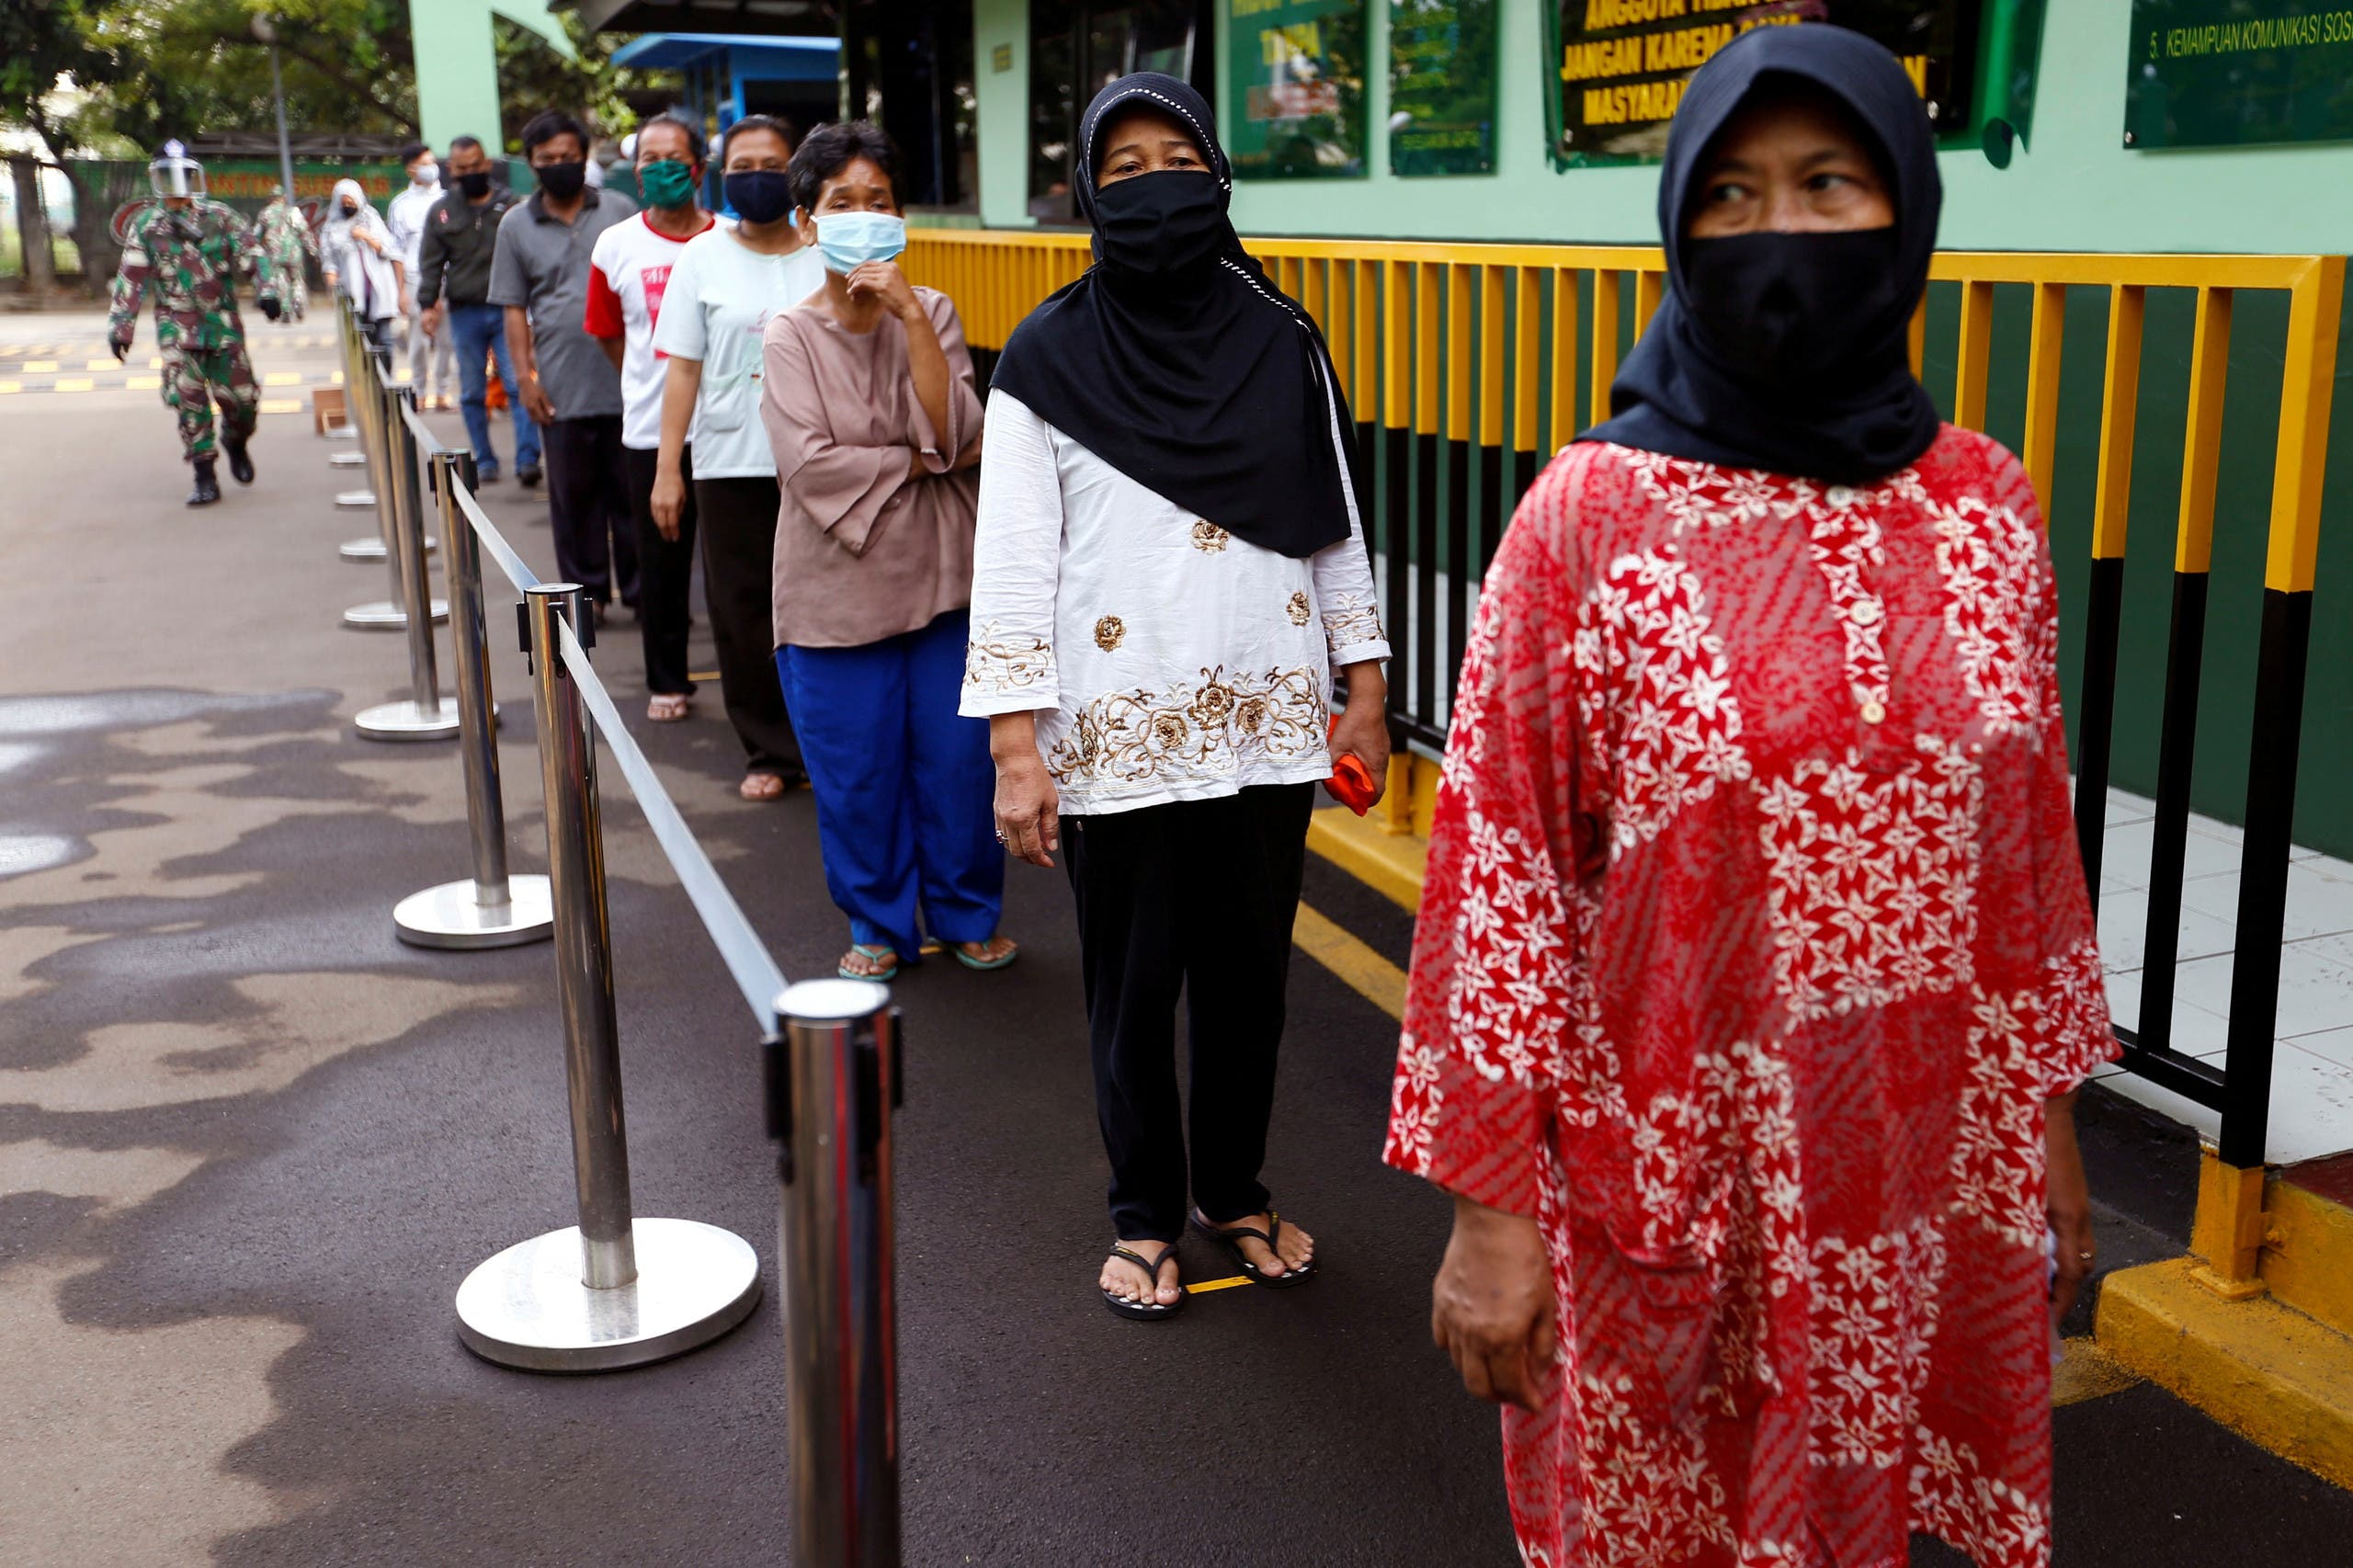 People wearing protective face mask practice social distancing while receiving rice from an automated rice ATM distributor amid the spread of the coronavirus disease (COVID-19) in Jakarta, Indonesia, May 4, 2020. (Reuters)